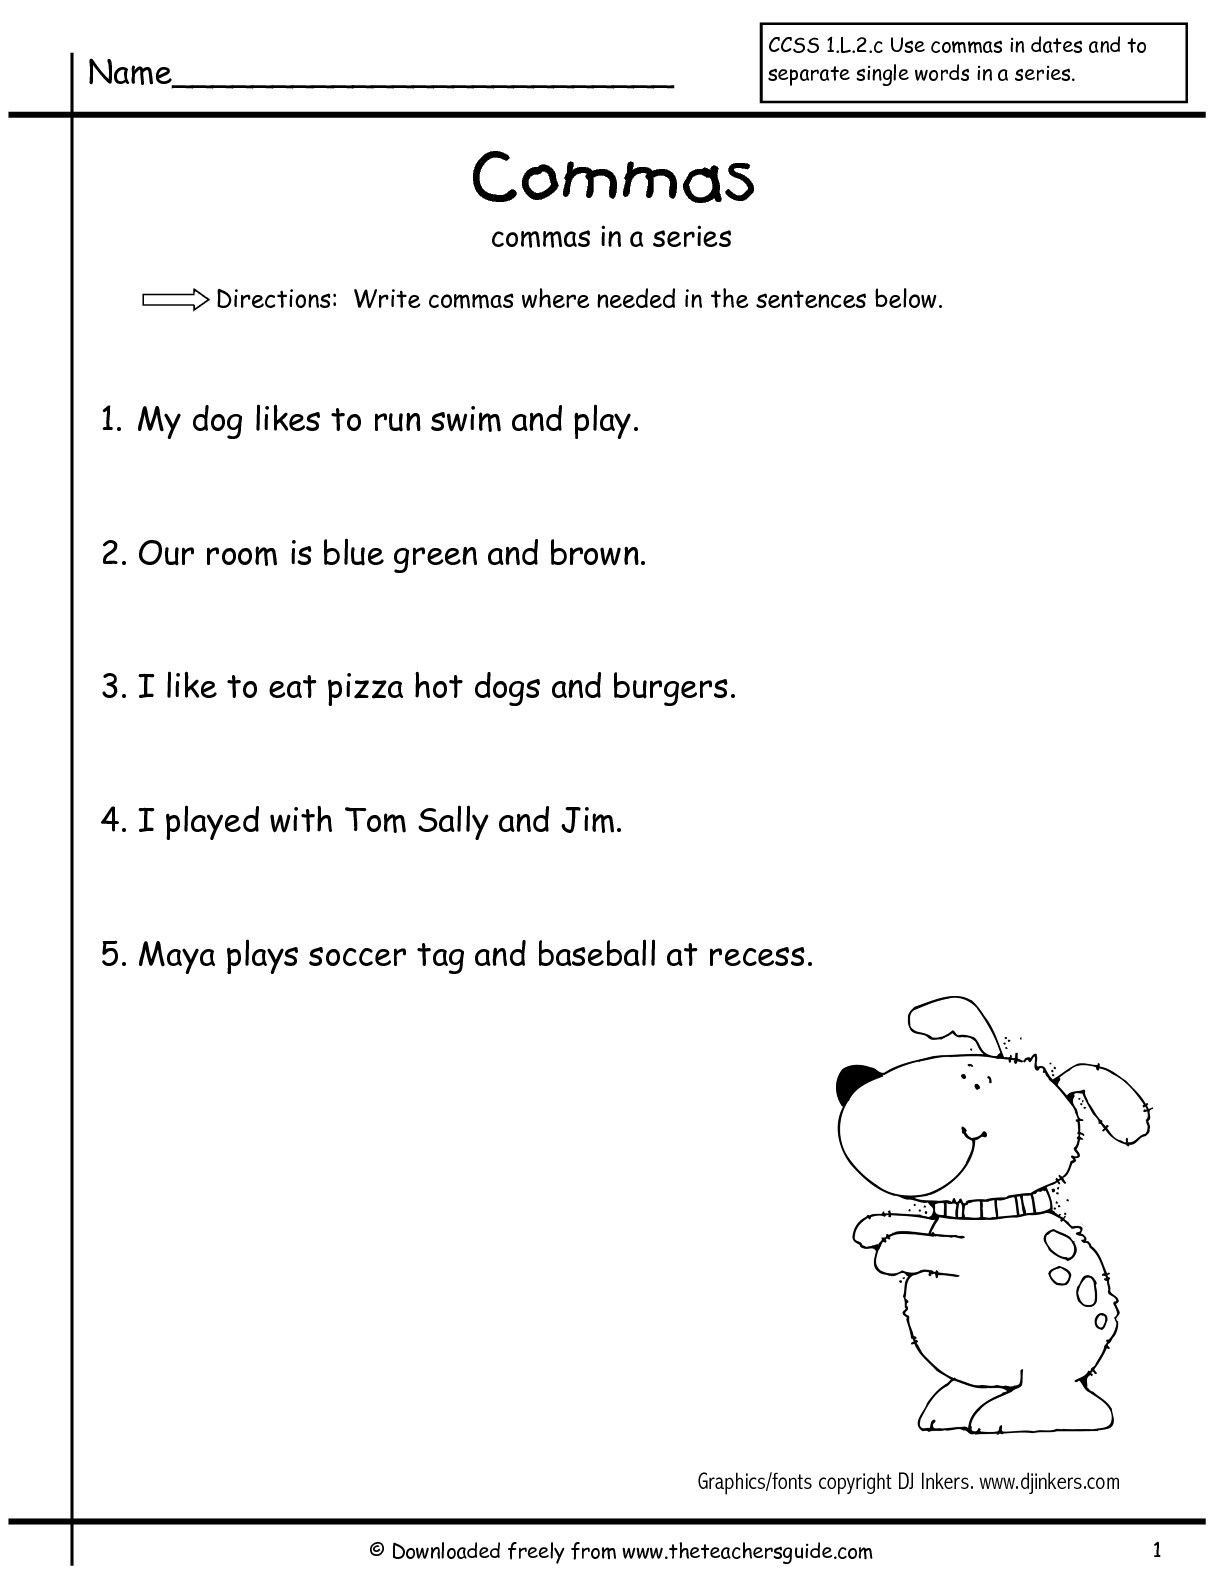 Capitalization Worksheets Grade 1 Masinseriesfirstgrade2 001 001 1224—1584